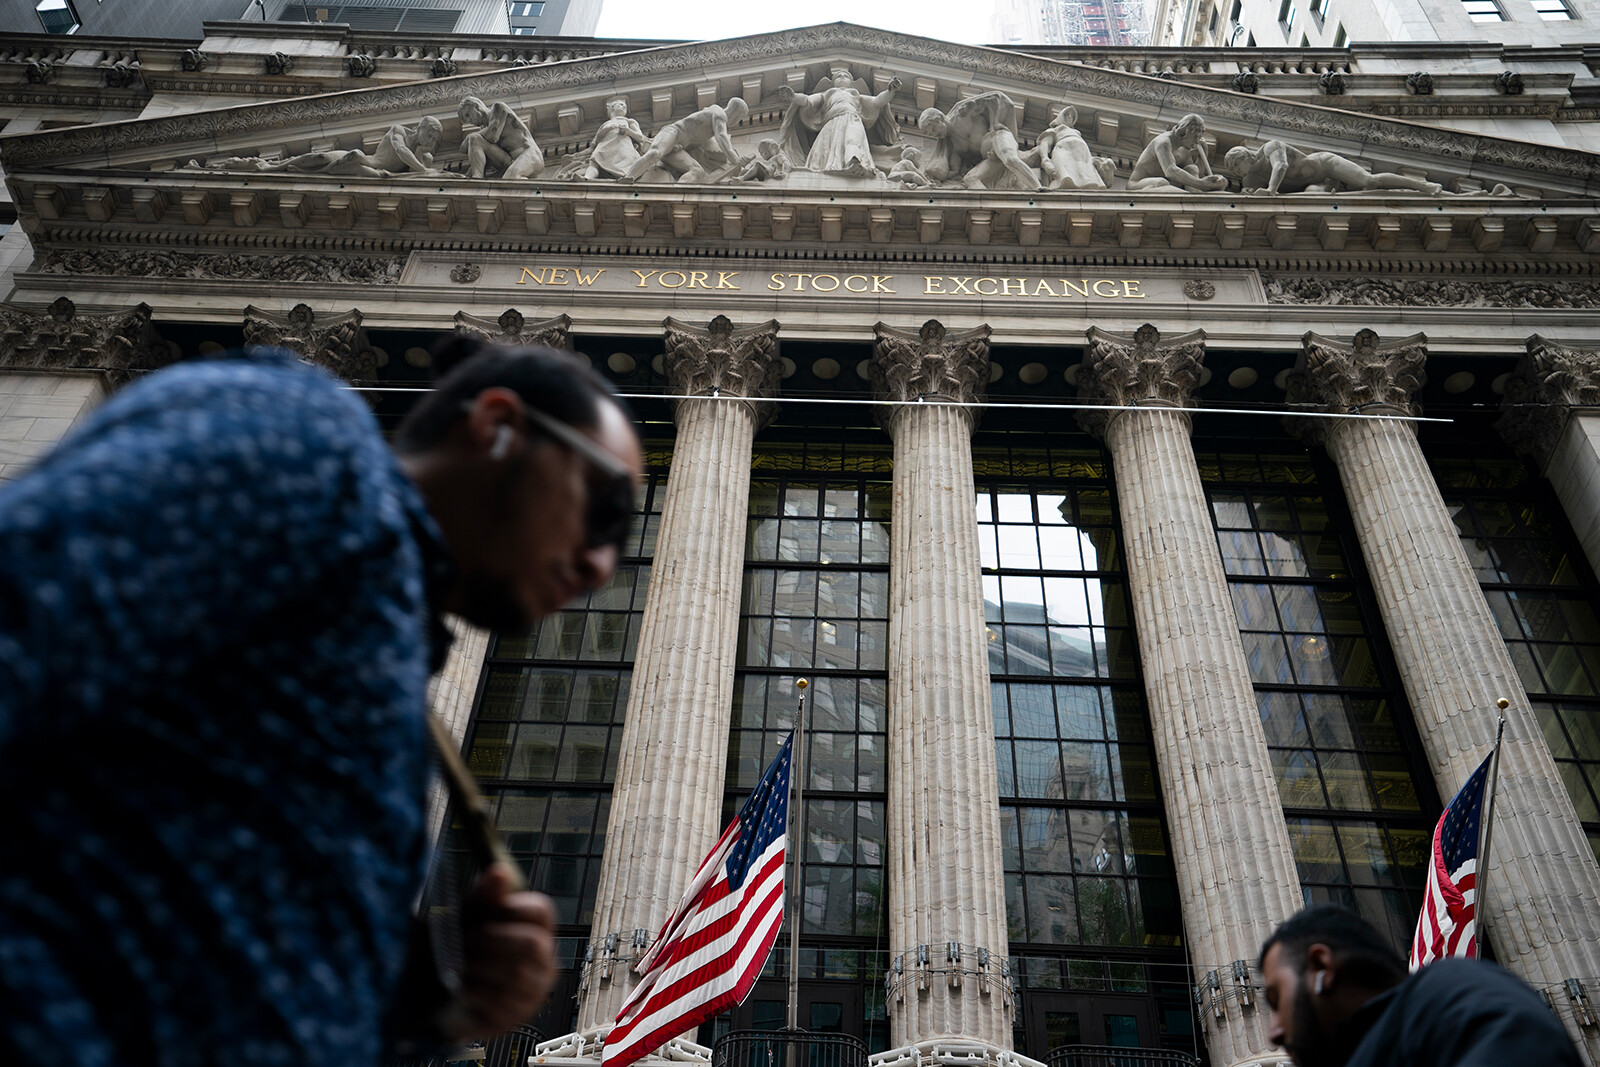 Stocks tumble on inflation and debt ceiling worries